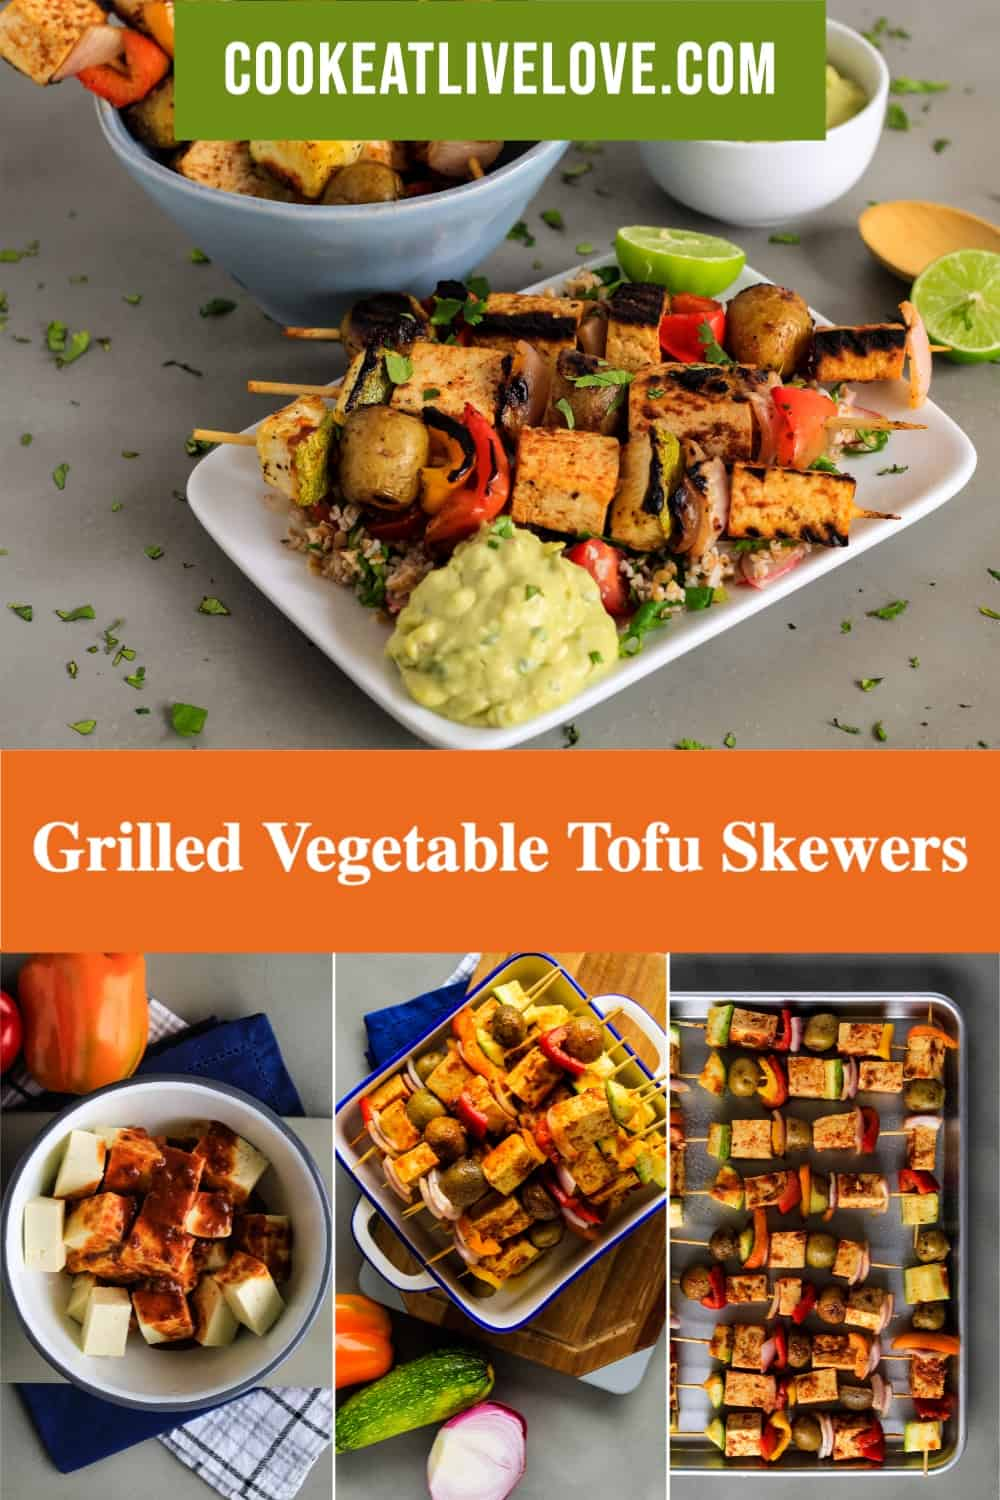 Pin for pinterest with multiple images of cooking and prepared tofu skewers.